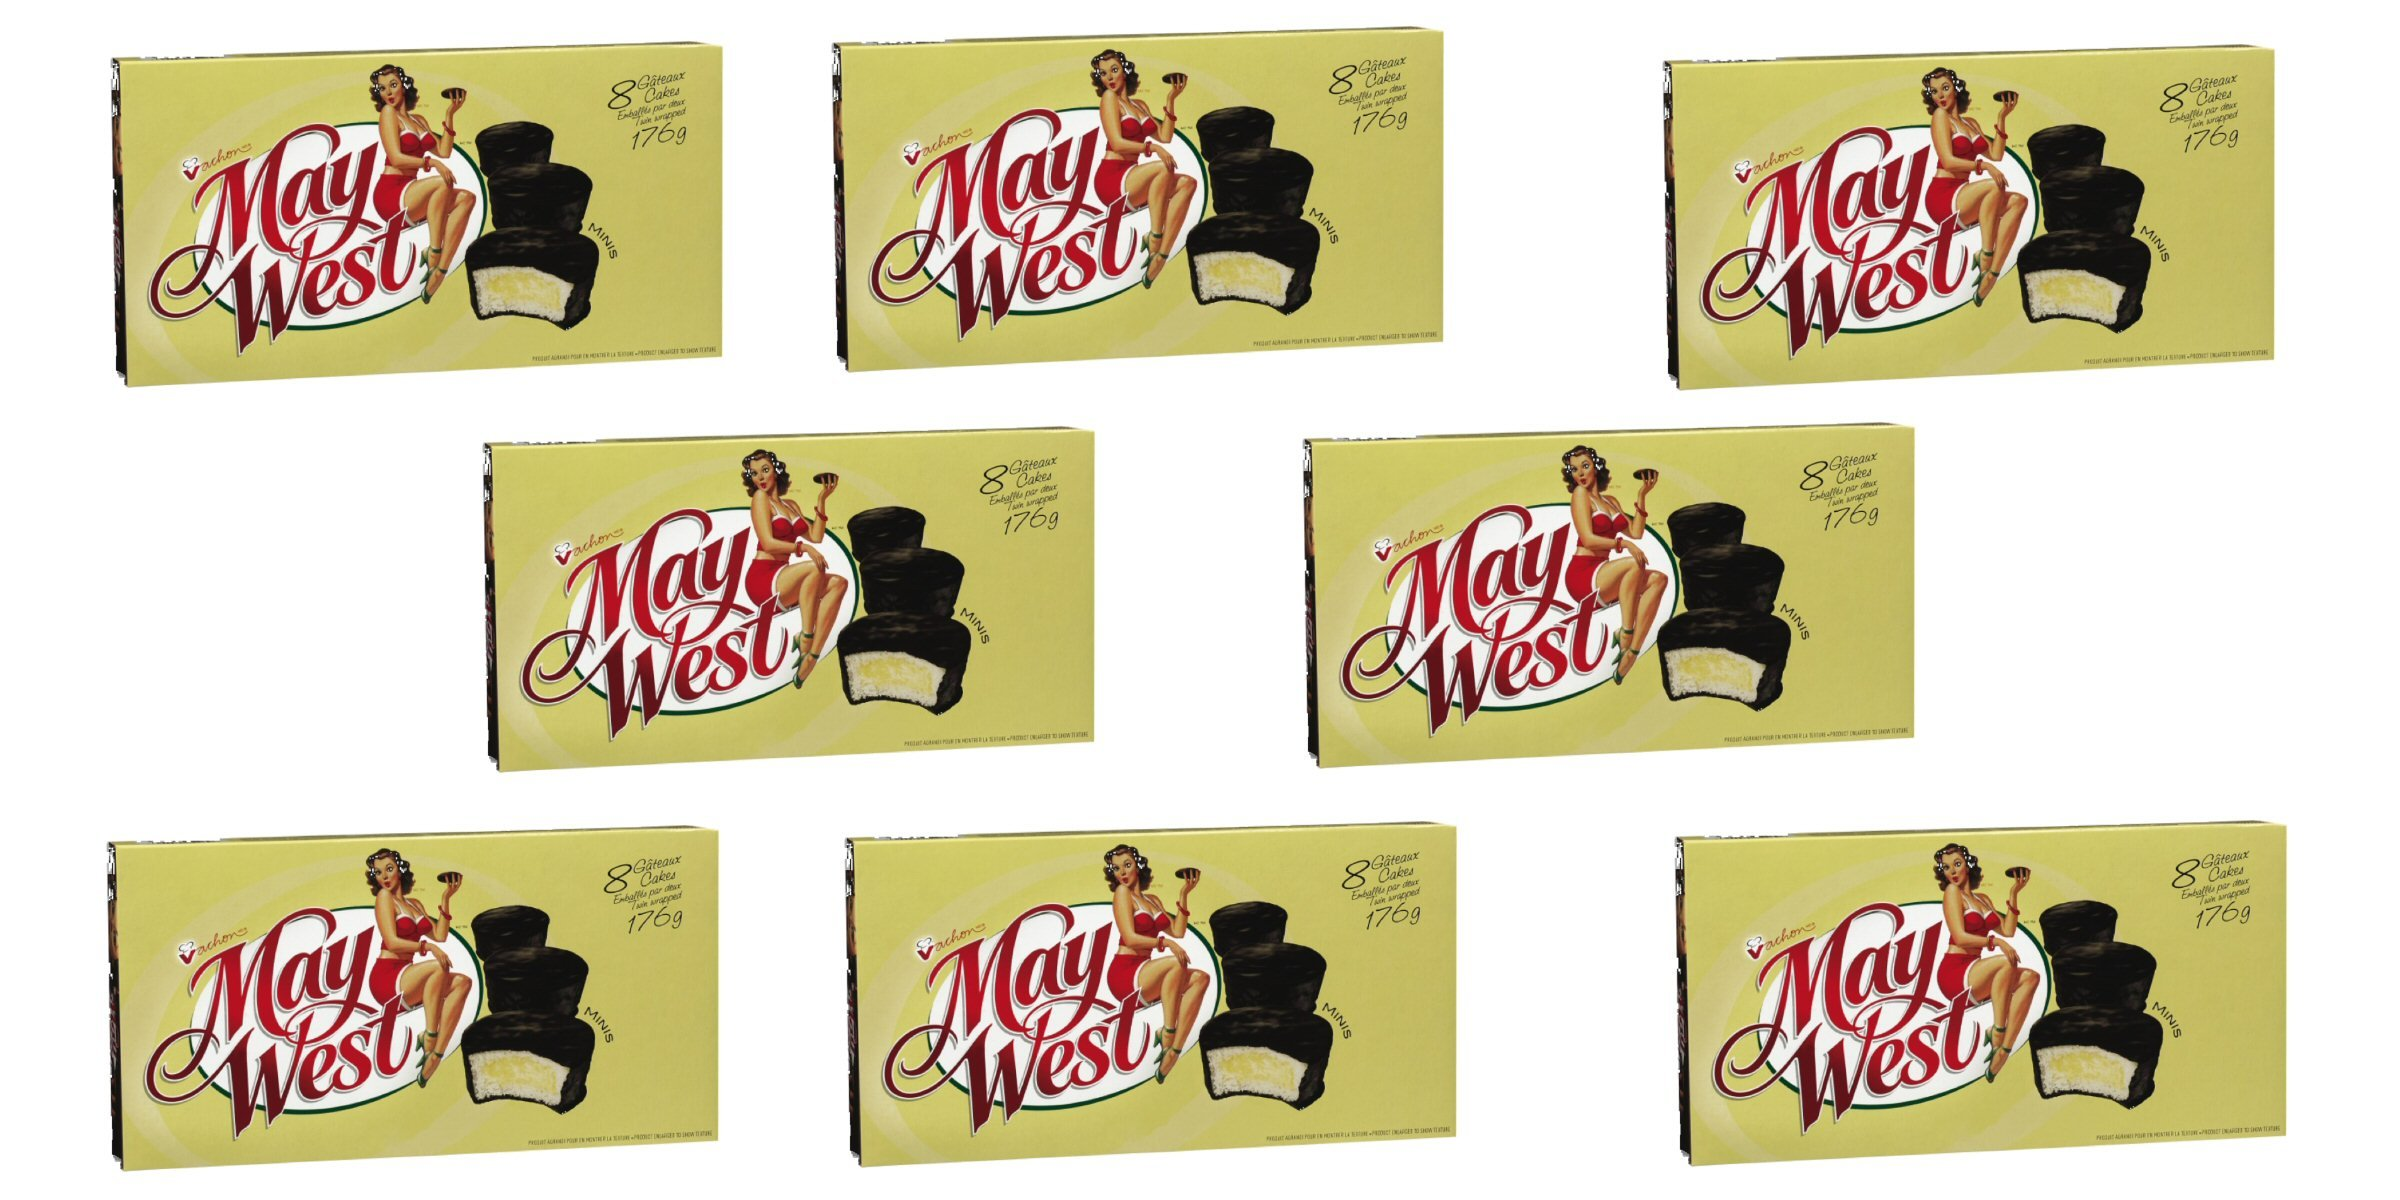 (8 Box) 6 Cakes Vachon the Original May West Cakes